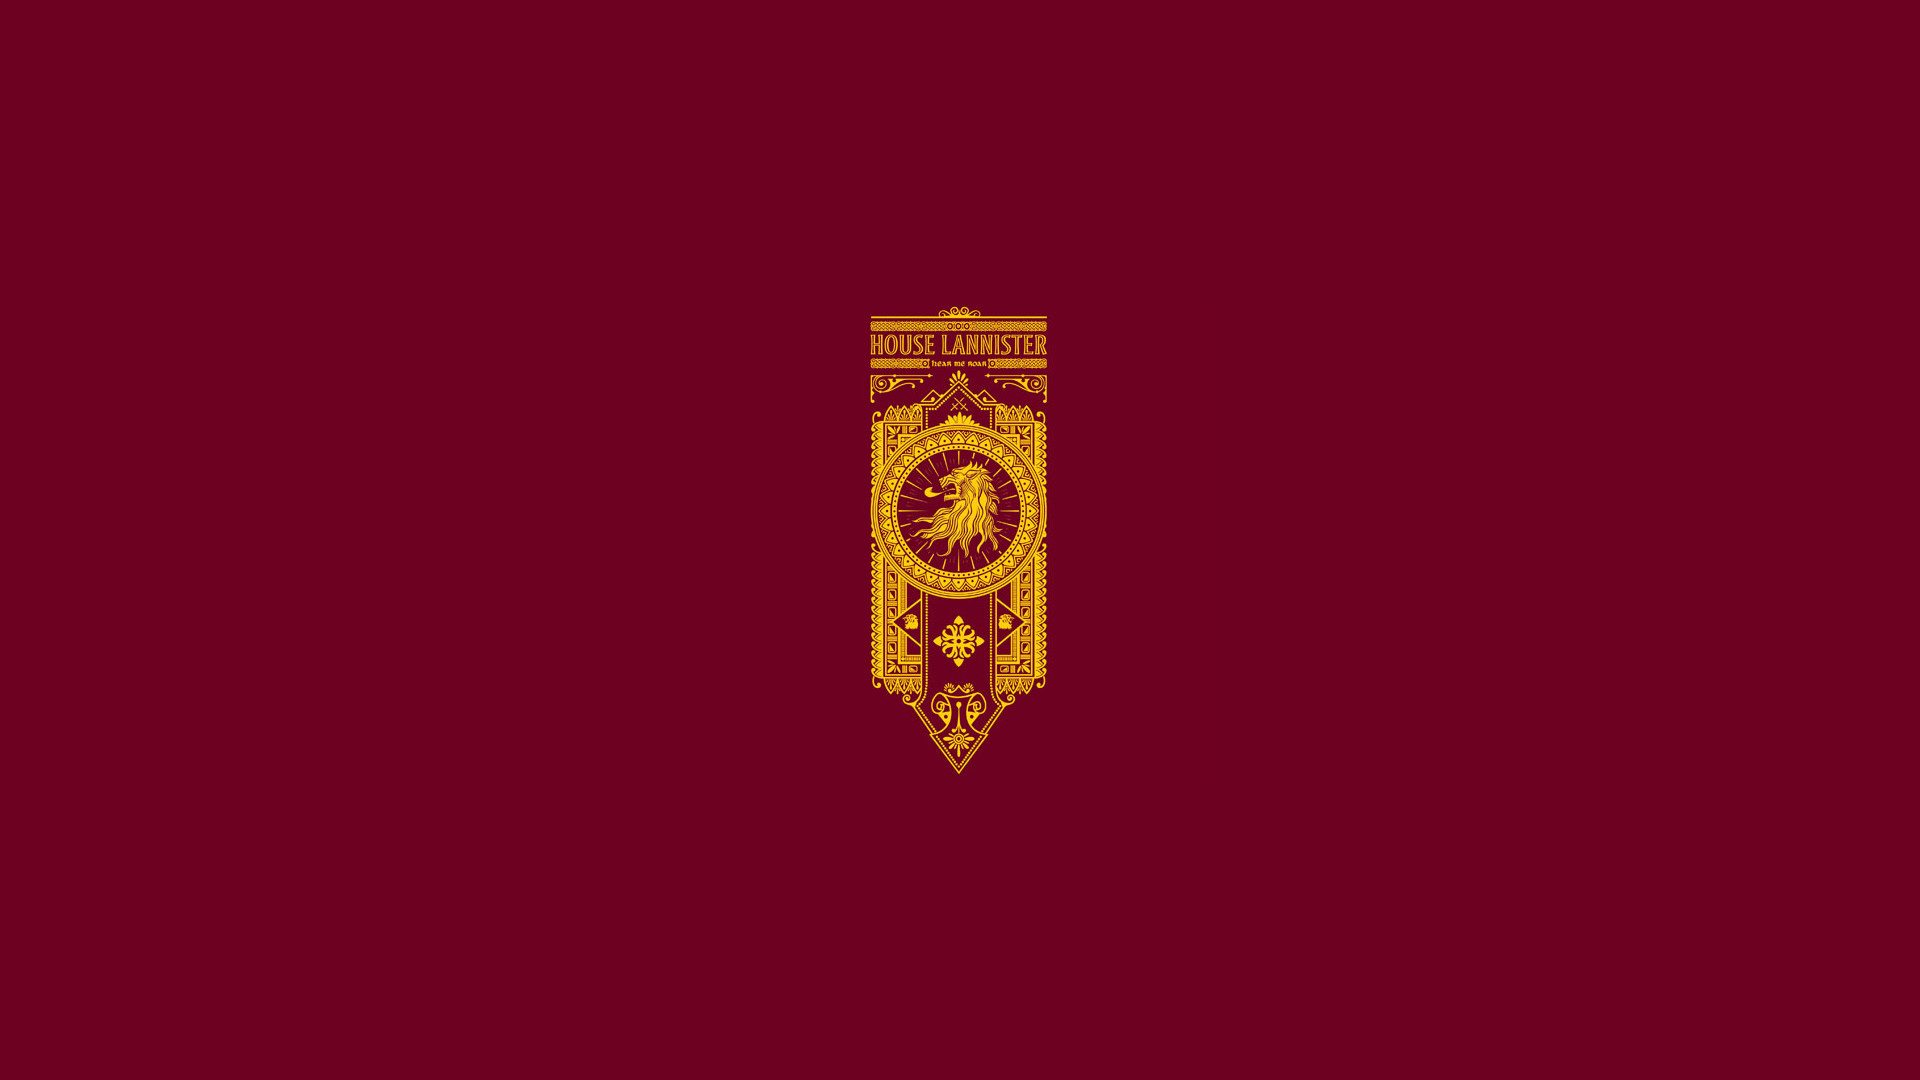 1920x1080 House Lannister, Hear me roar, sigil, banner Game of Thrones banners  wallpapers,